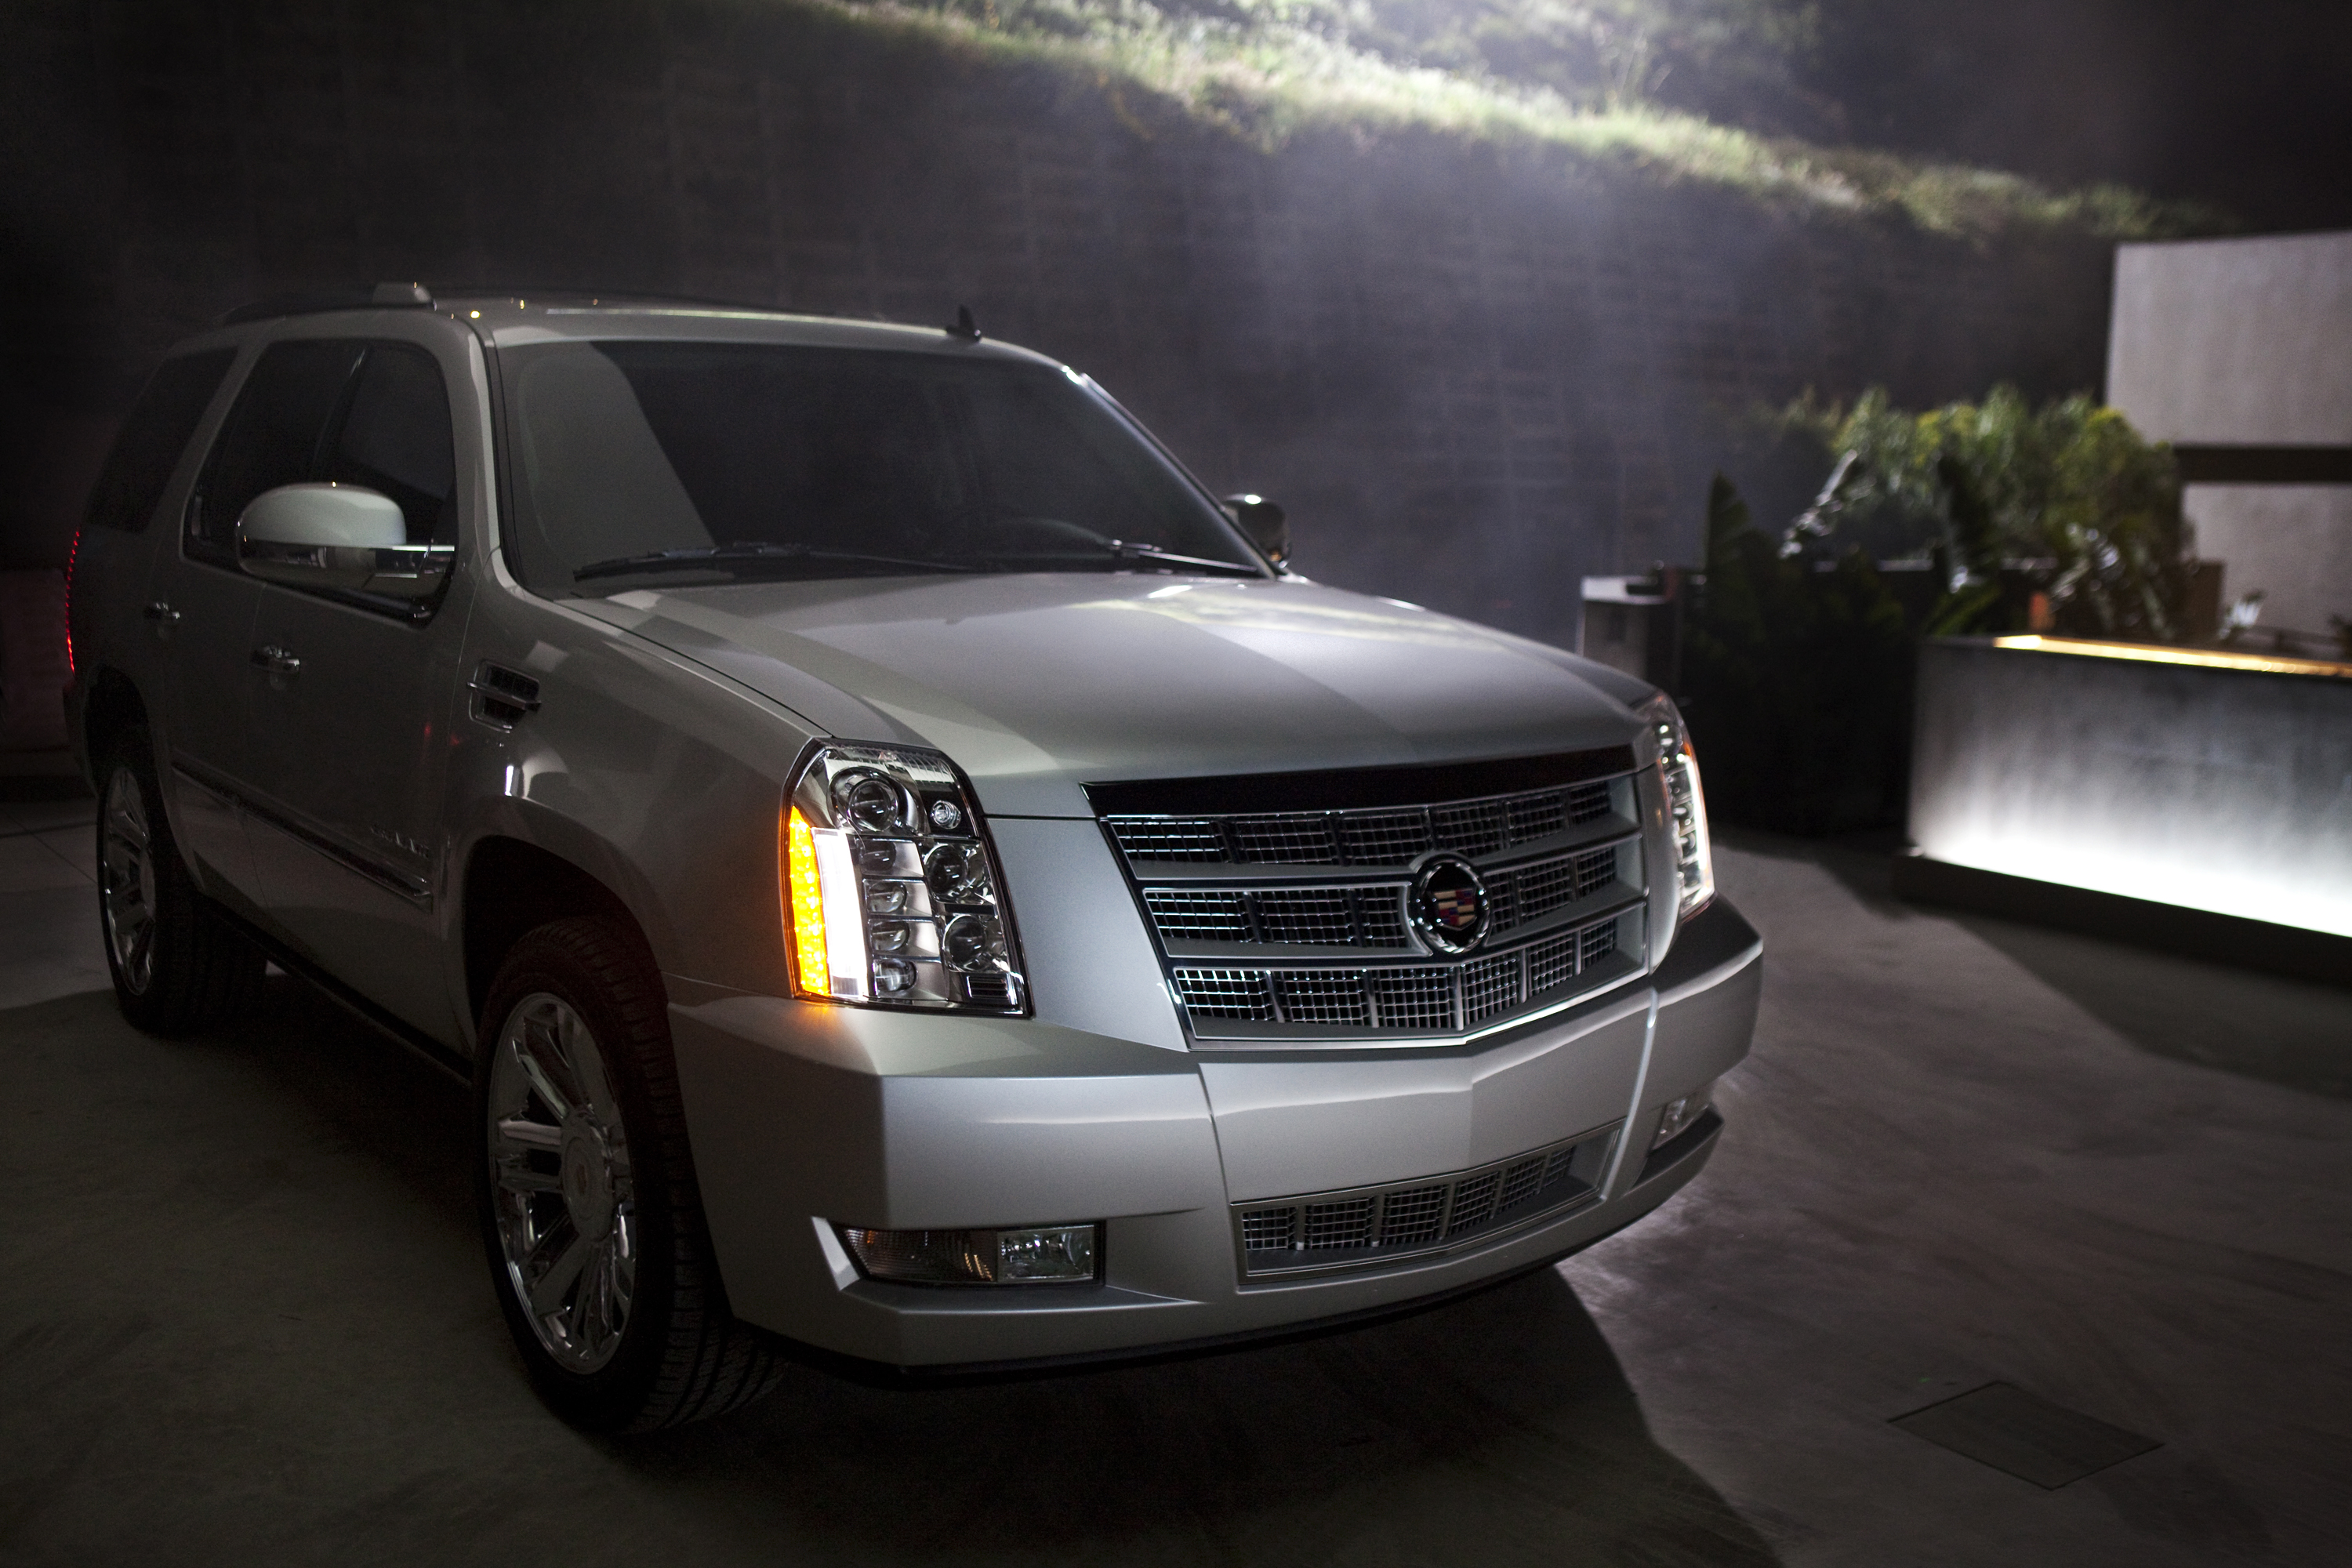 2014 Cadillac Escalade Lineup Continues Tradition Of Luxury Style